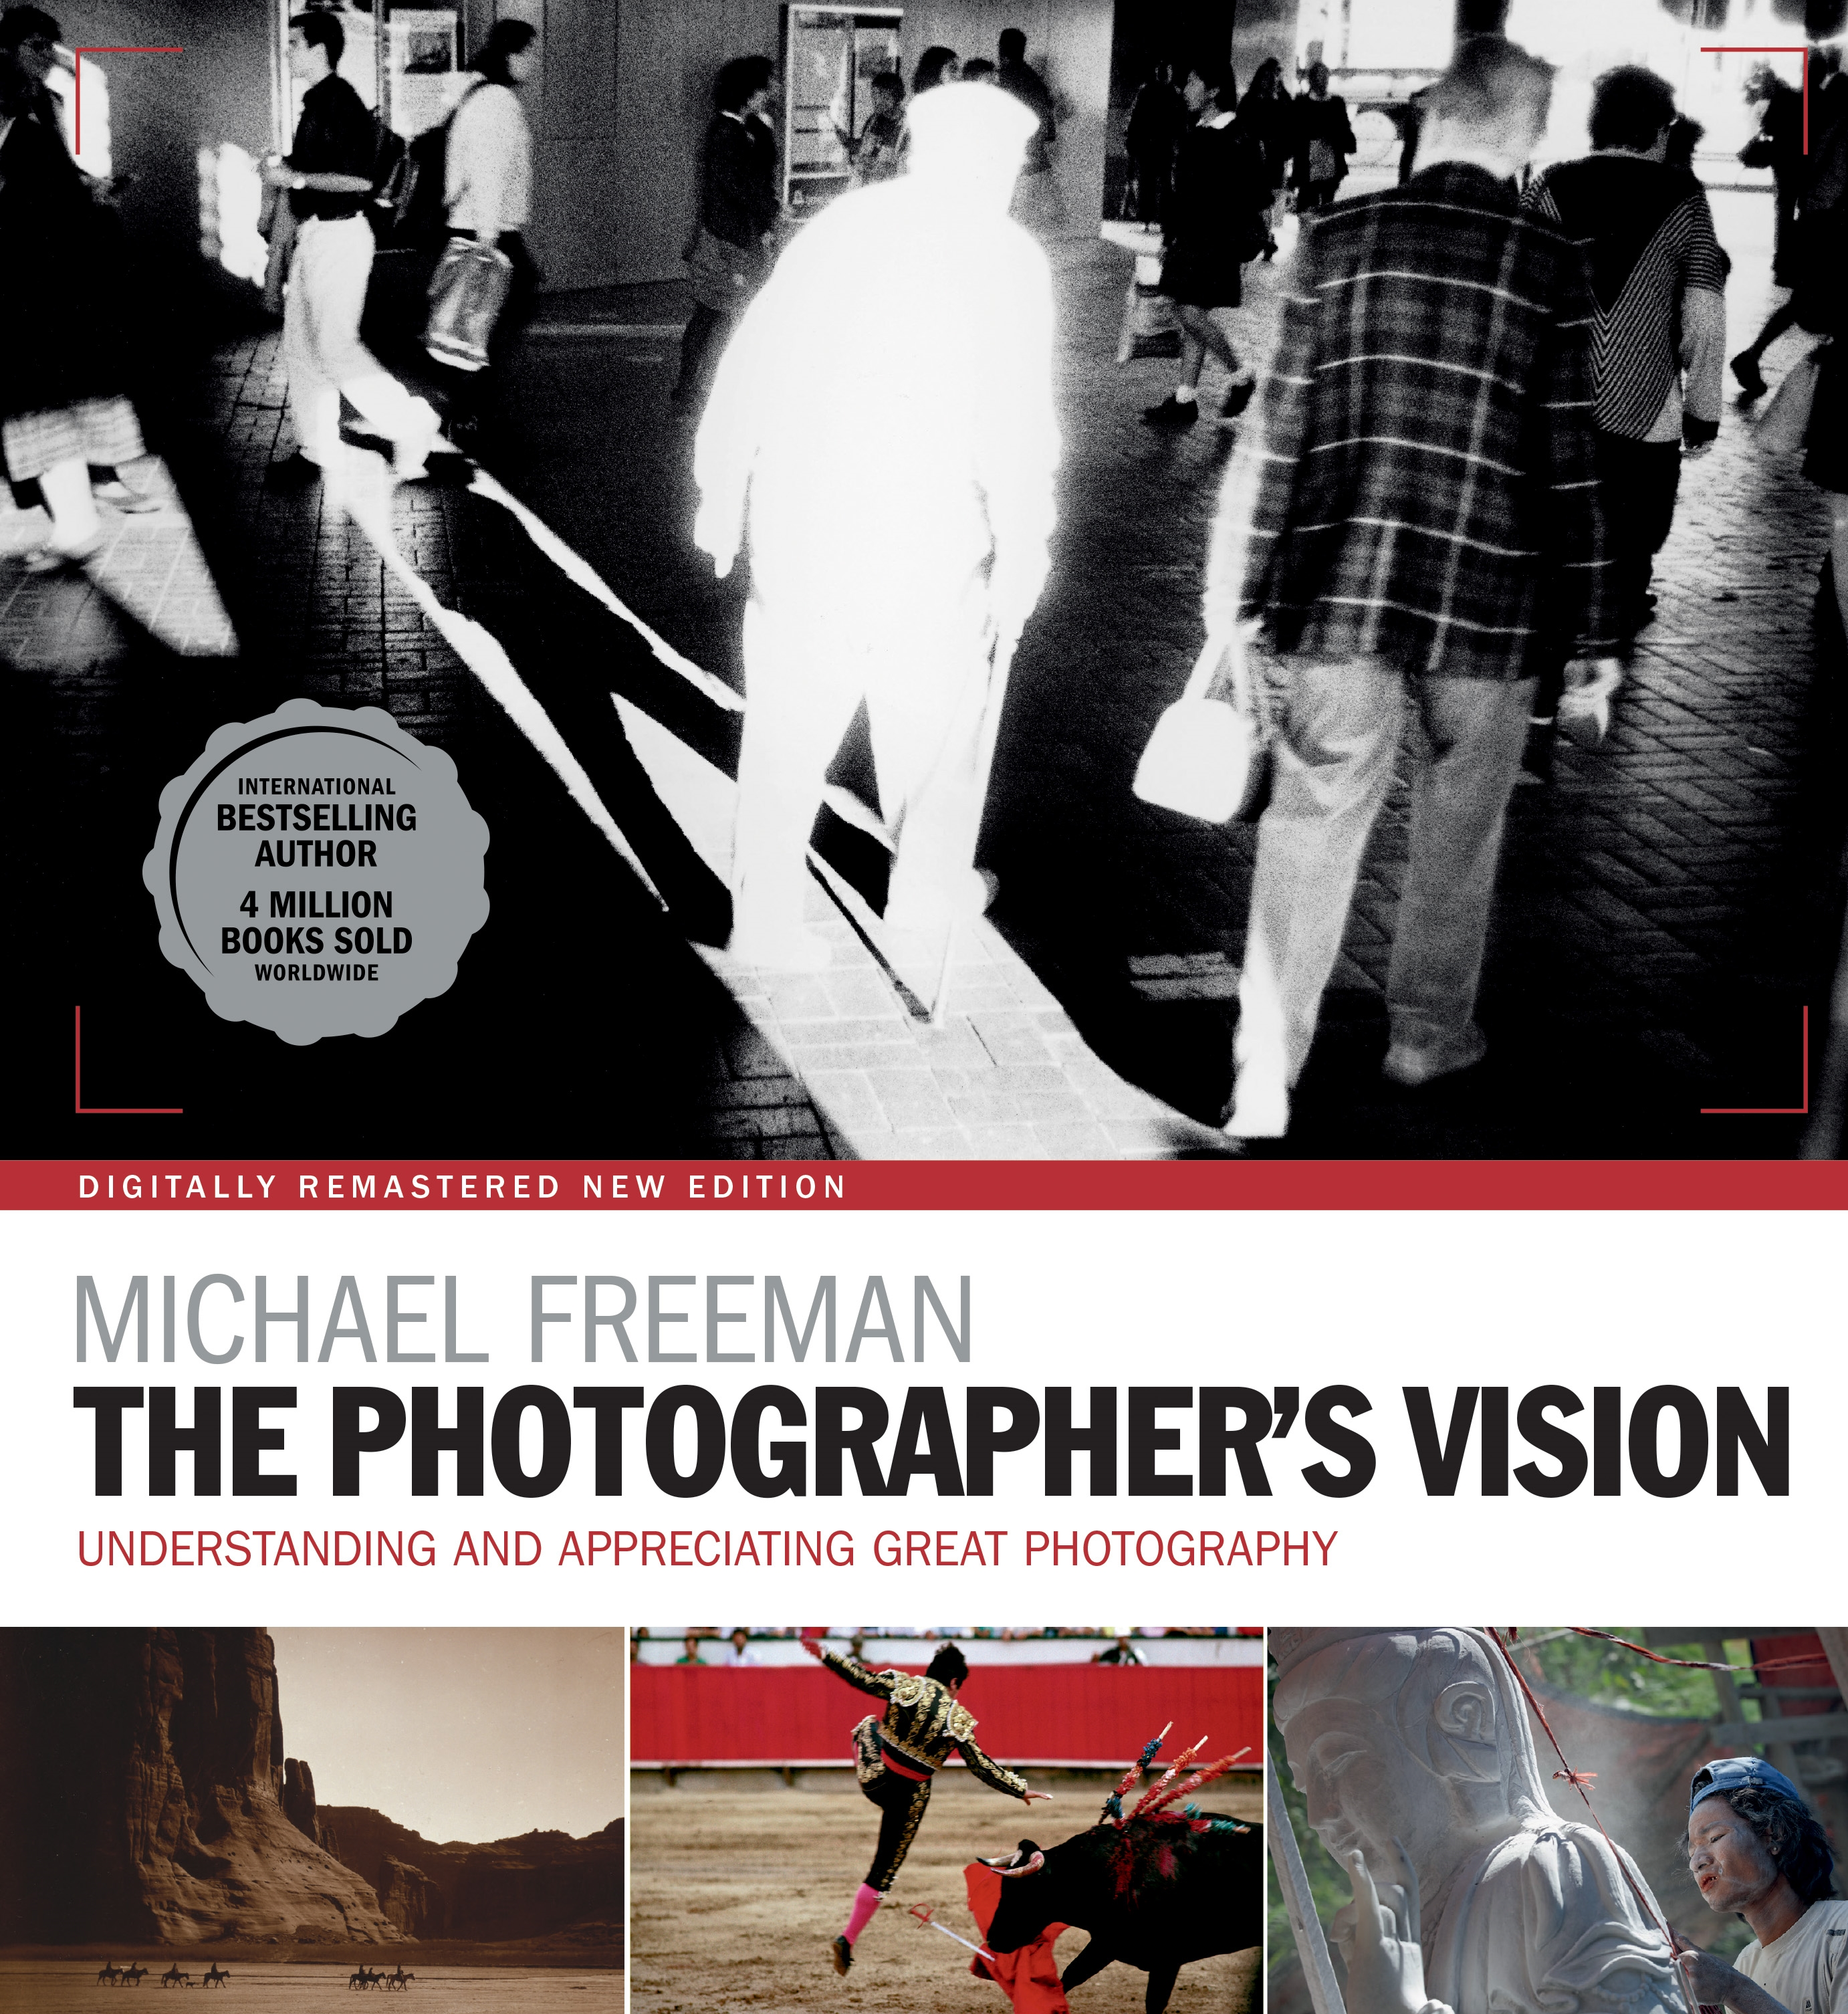 The photographers vision remastered